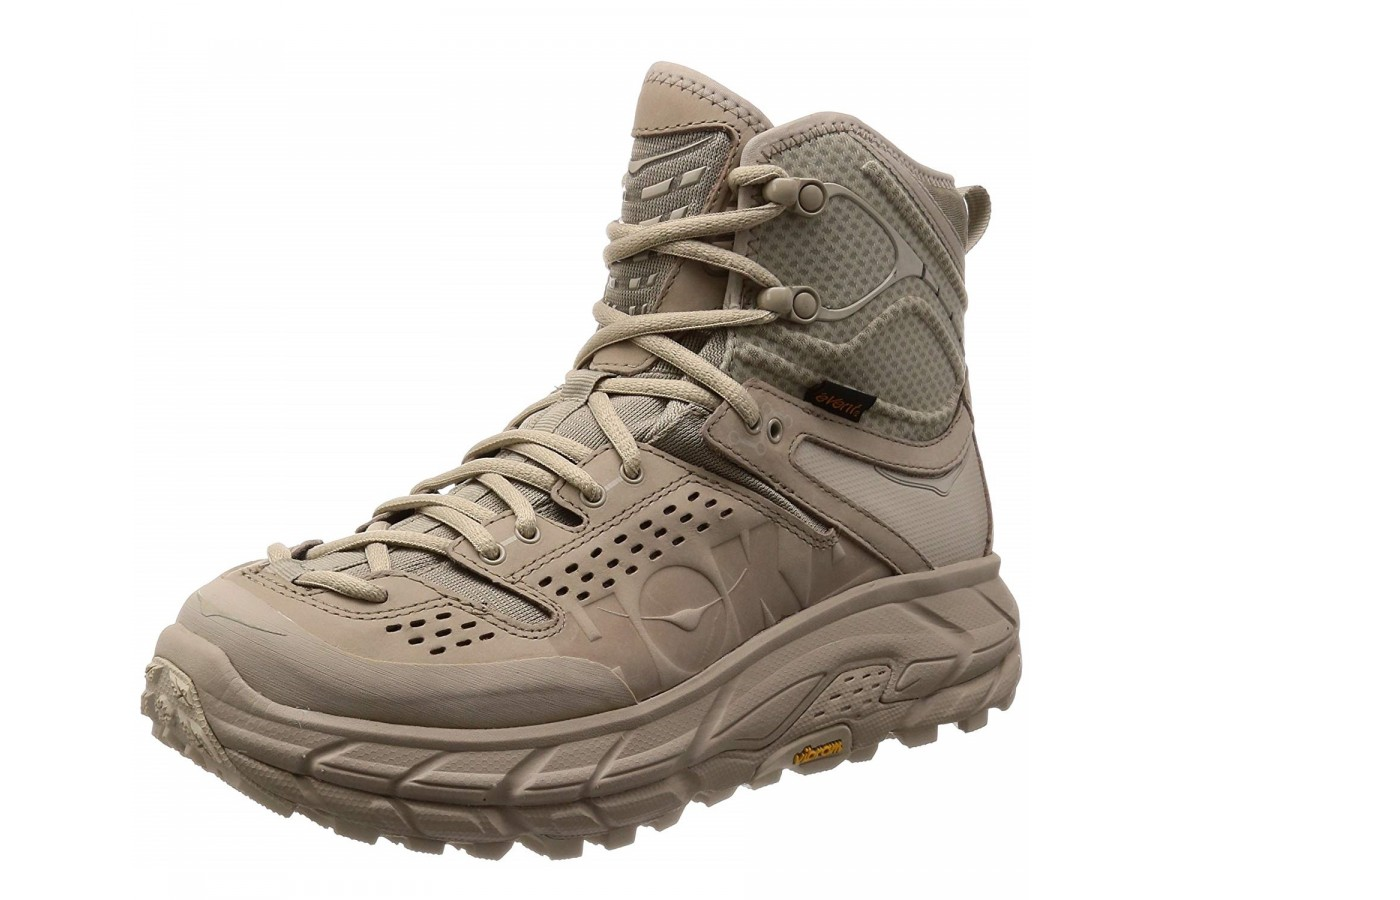 The Hoka One One Tor Ultra Hi WP offers a full-grain leather upper for style and durability.